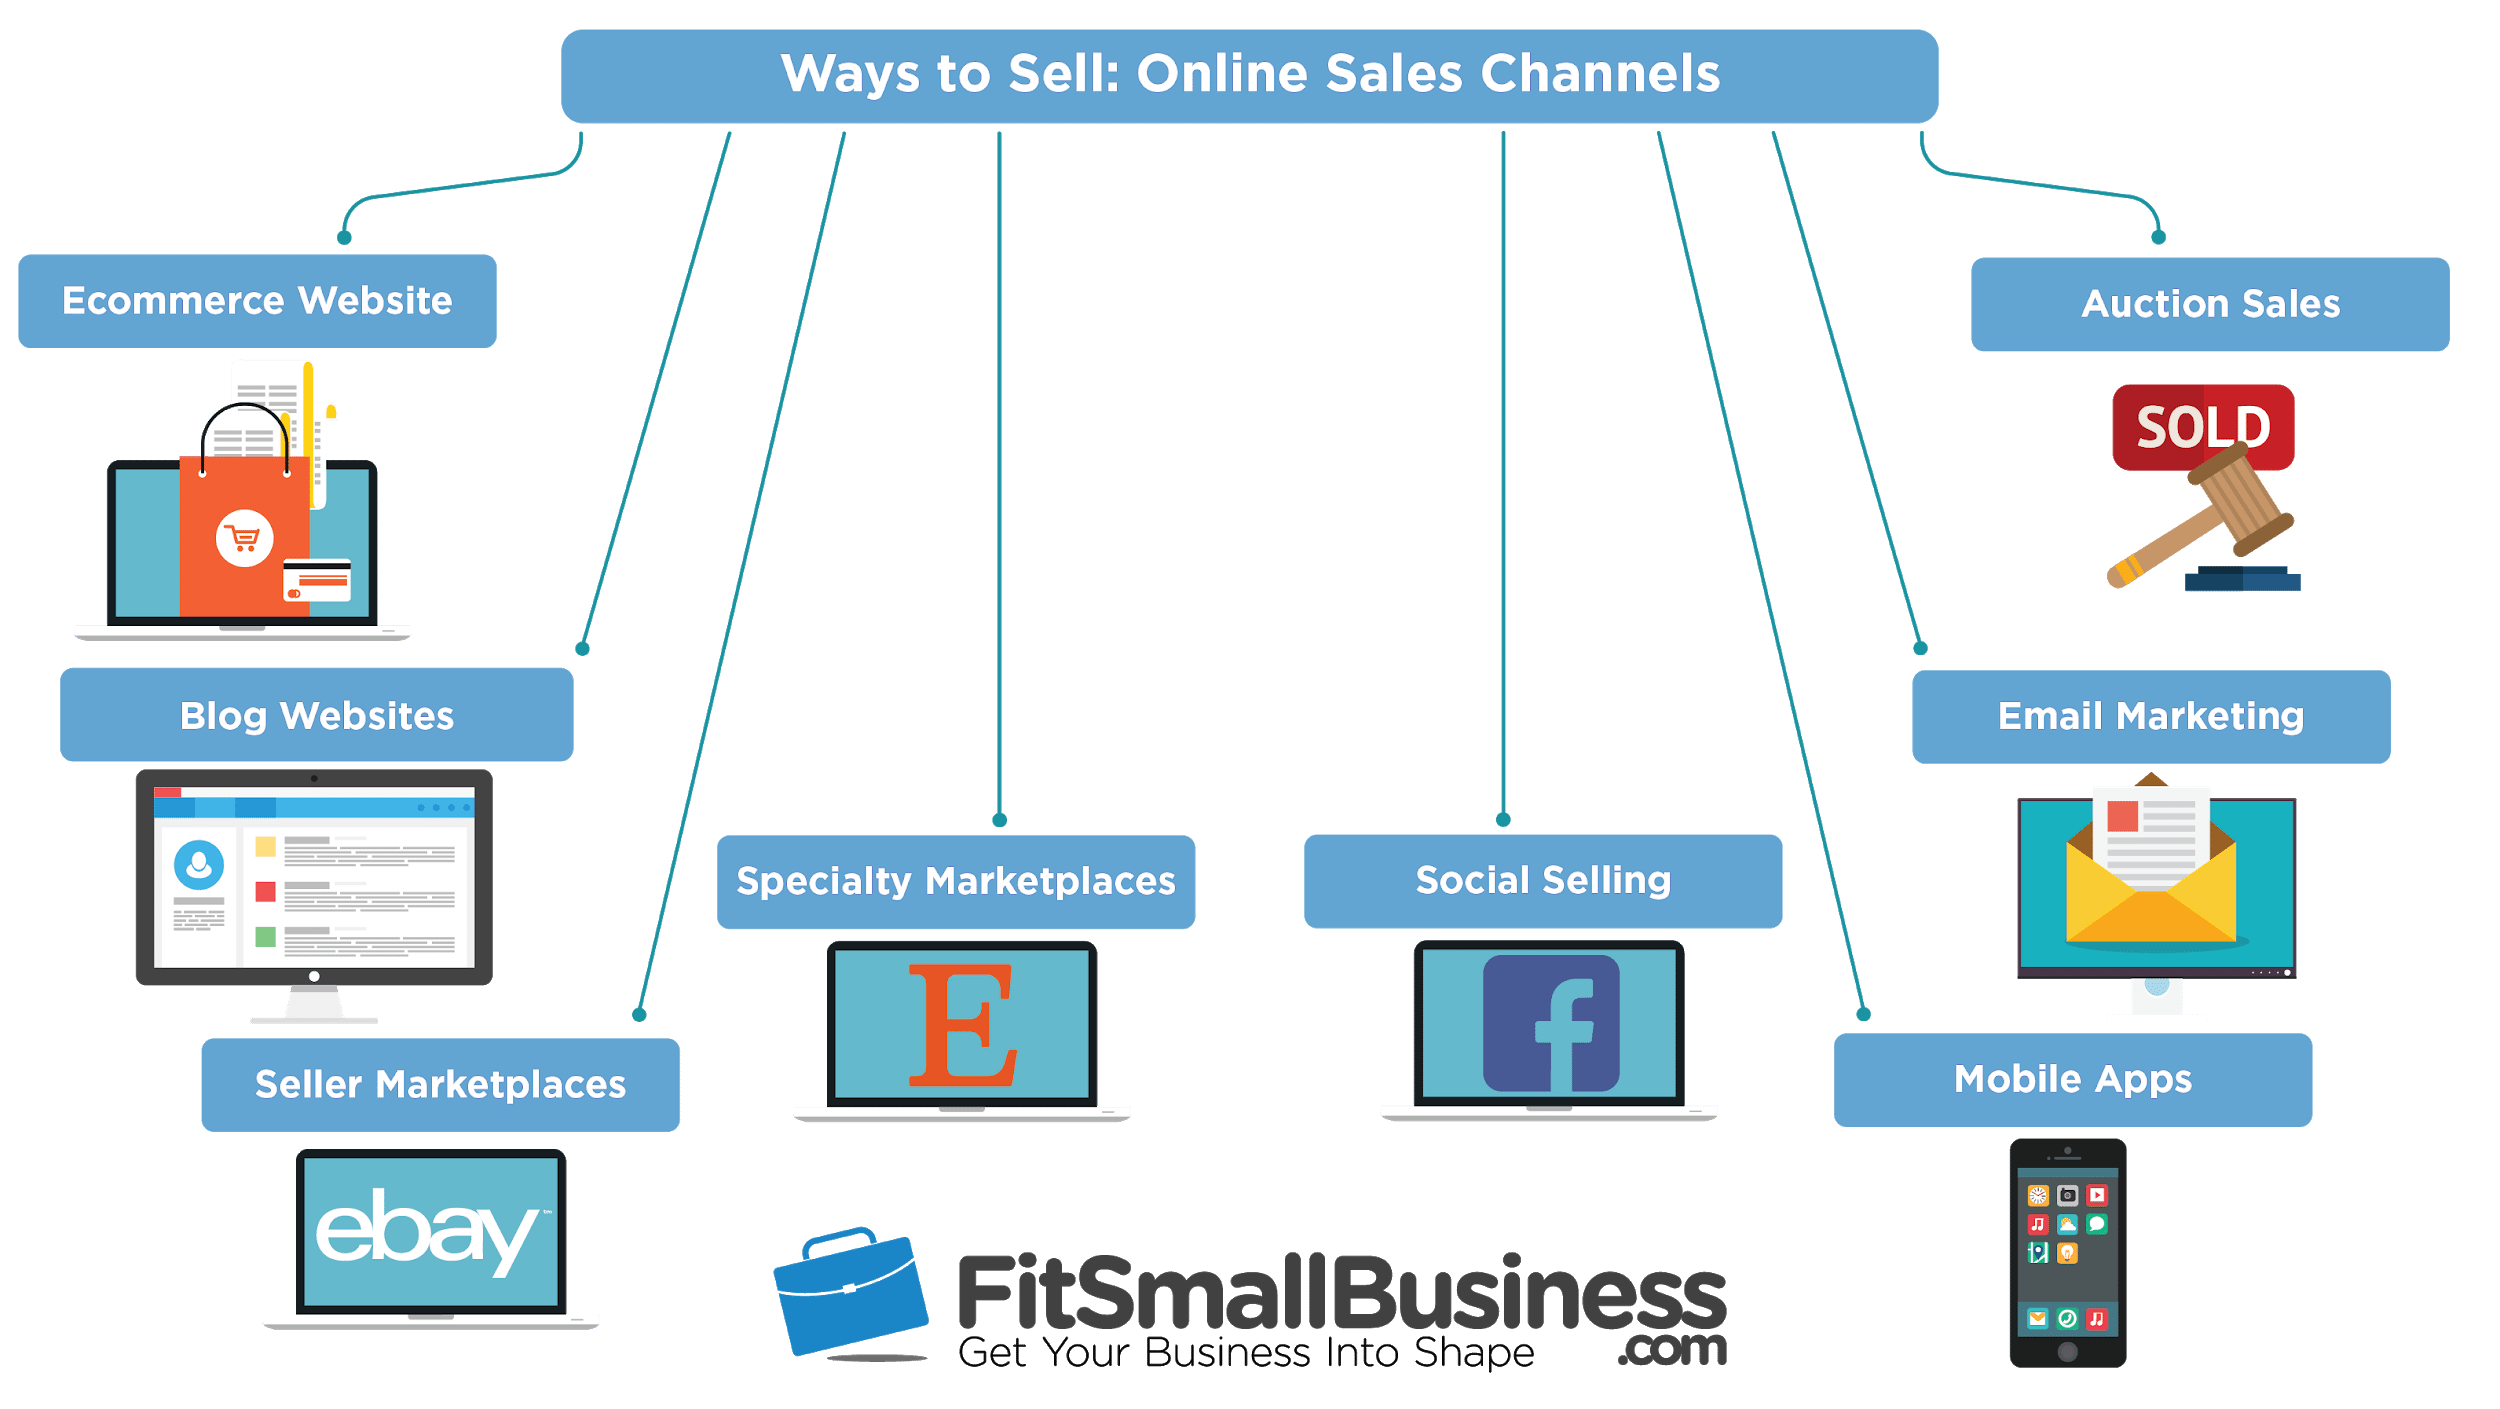 How to Sell Online - your sales channel options